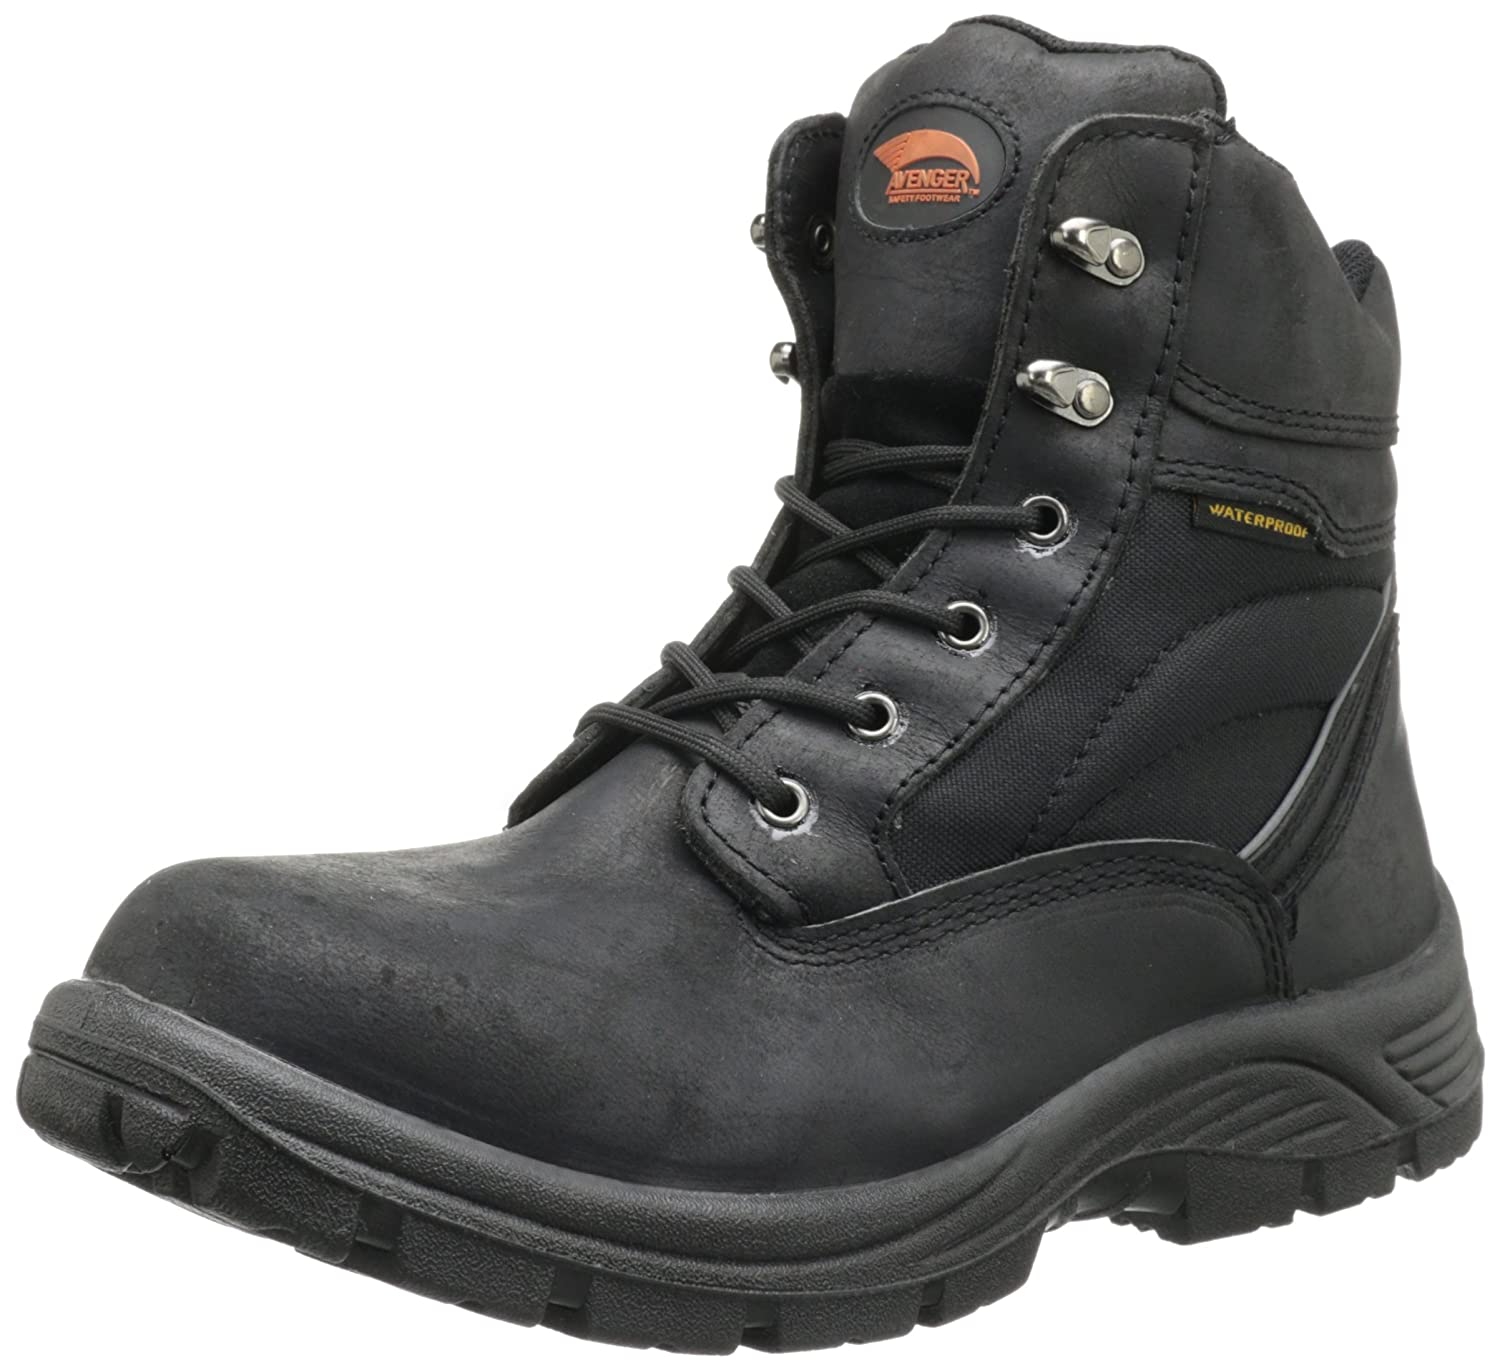 Avenger Safety Footwear メンズ B00BQBC5RS  ブラック 14 C/D US